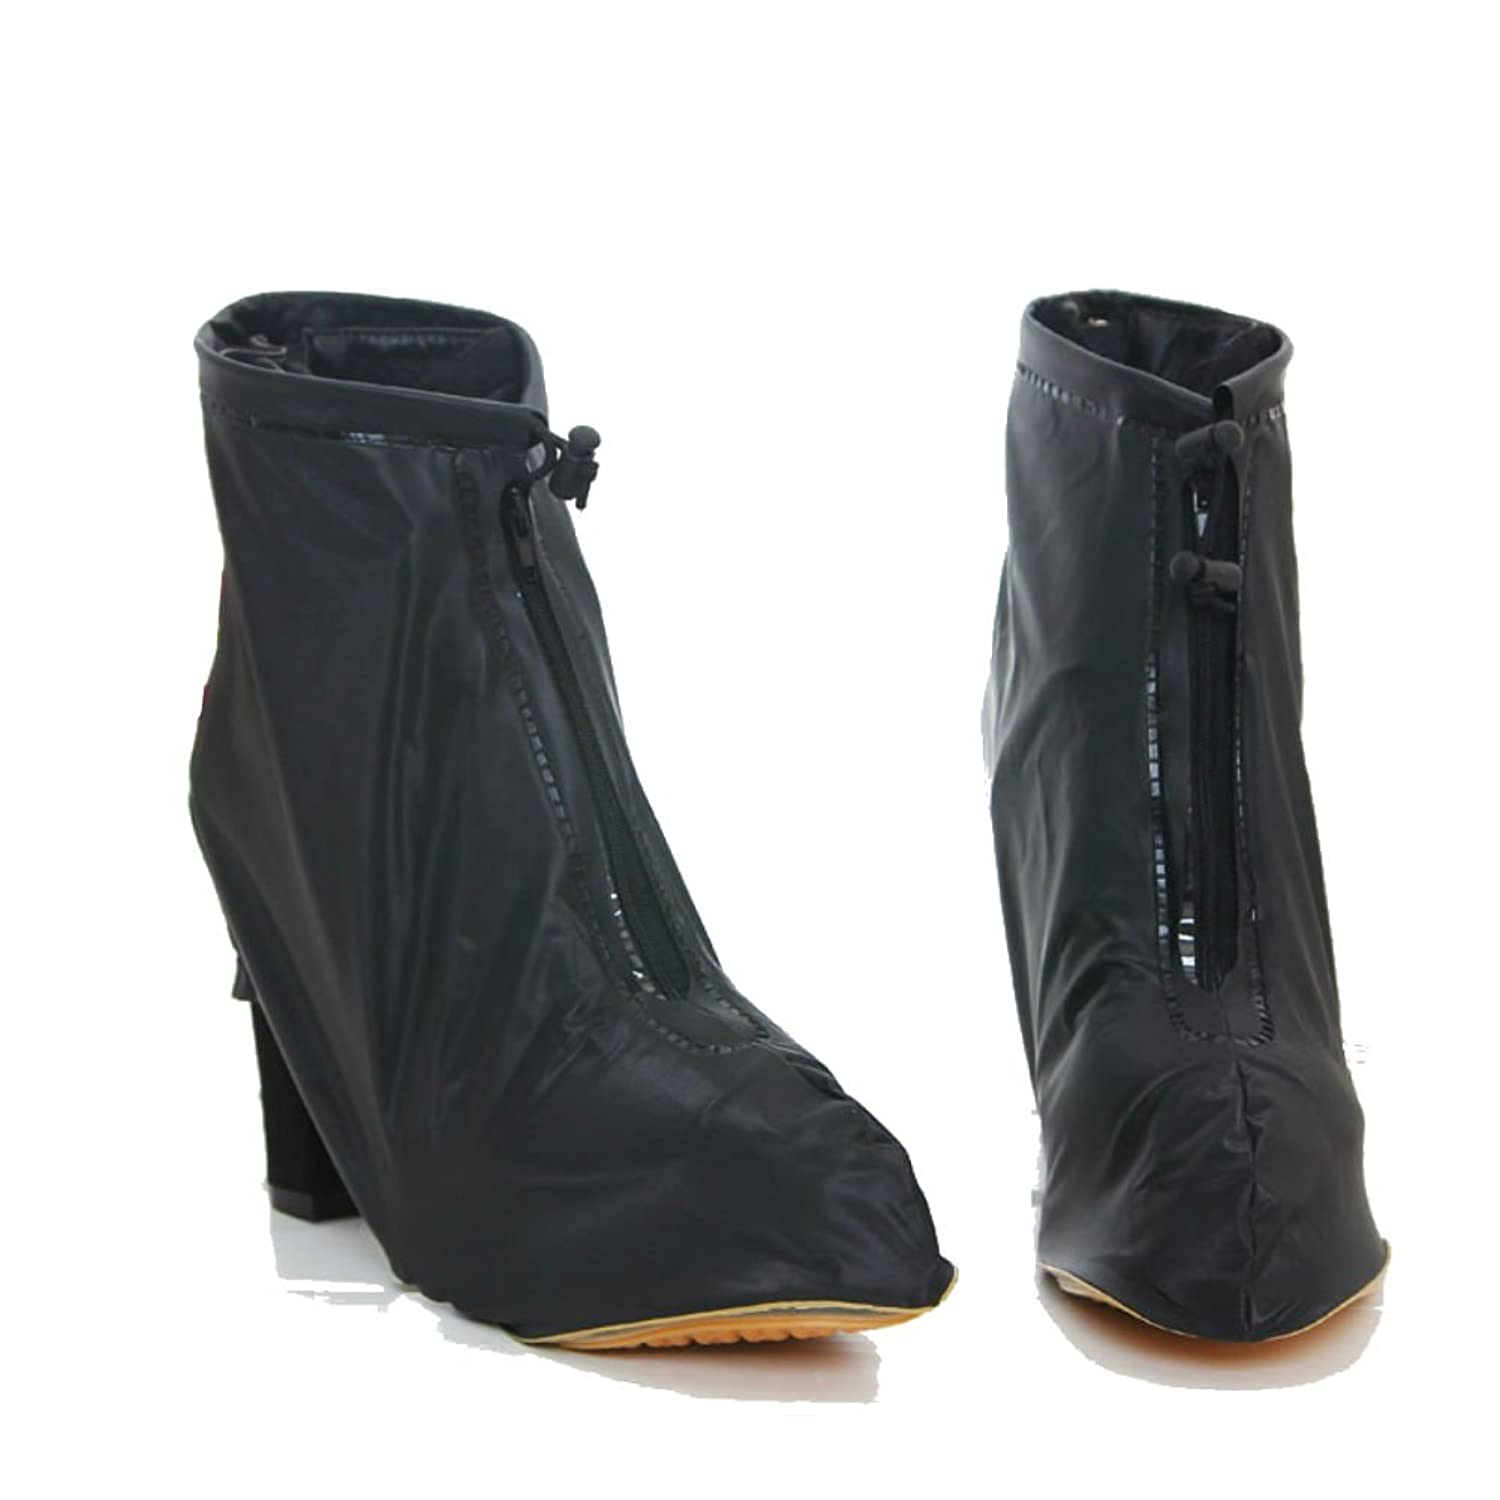 Retro Boots, Granny Boots, 70s Boots Rain Shoes Cover Guard Overshoe High Heels $13.00 AT vintagedancer.com